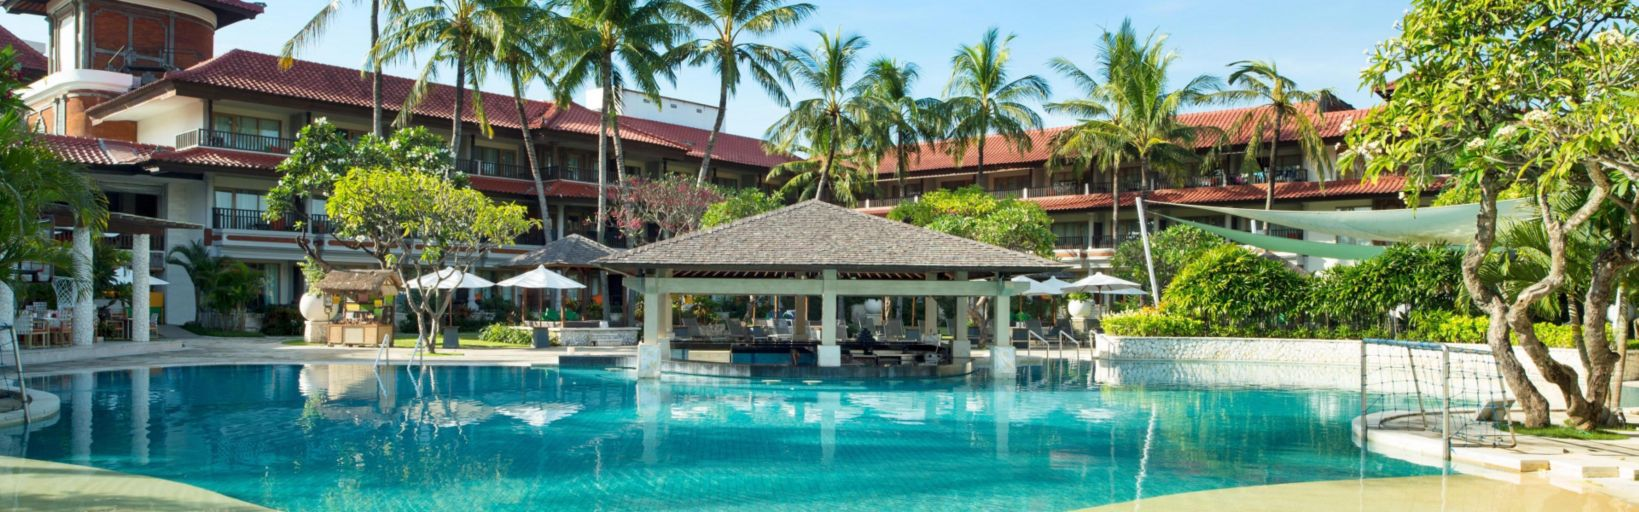 Holiday Inn Resort Baruna Bali Hotel by IHG